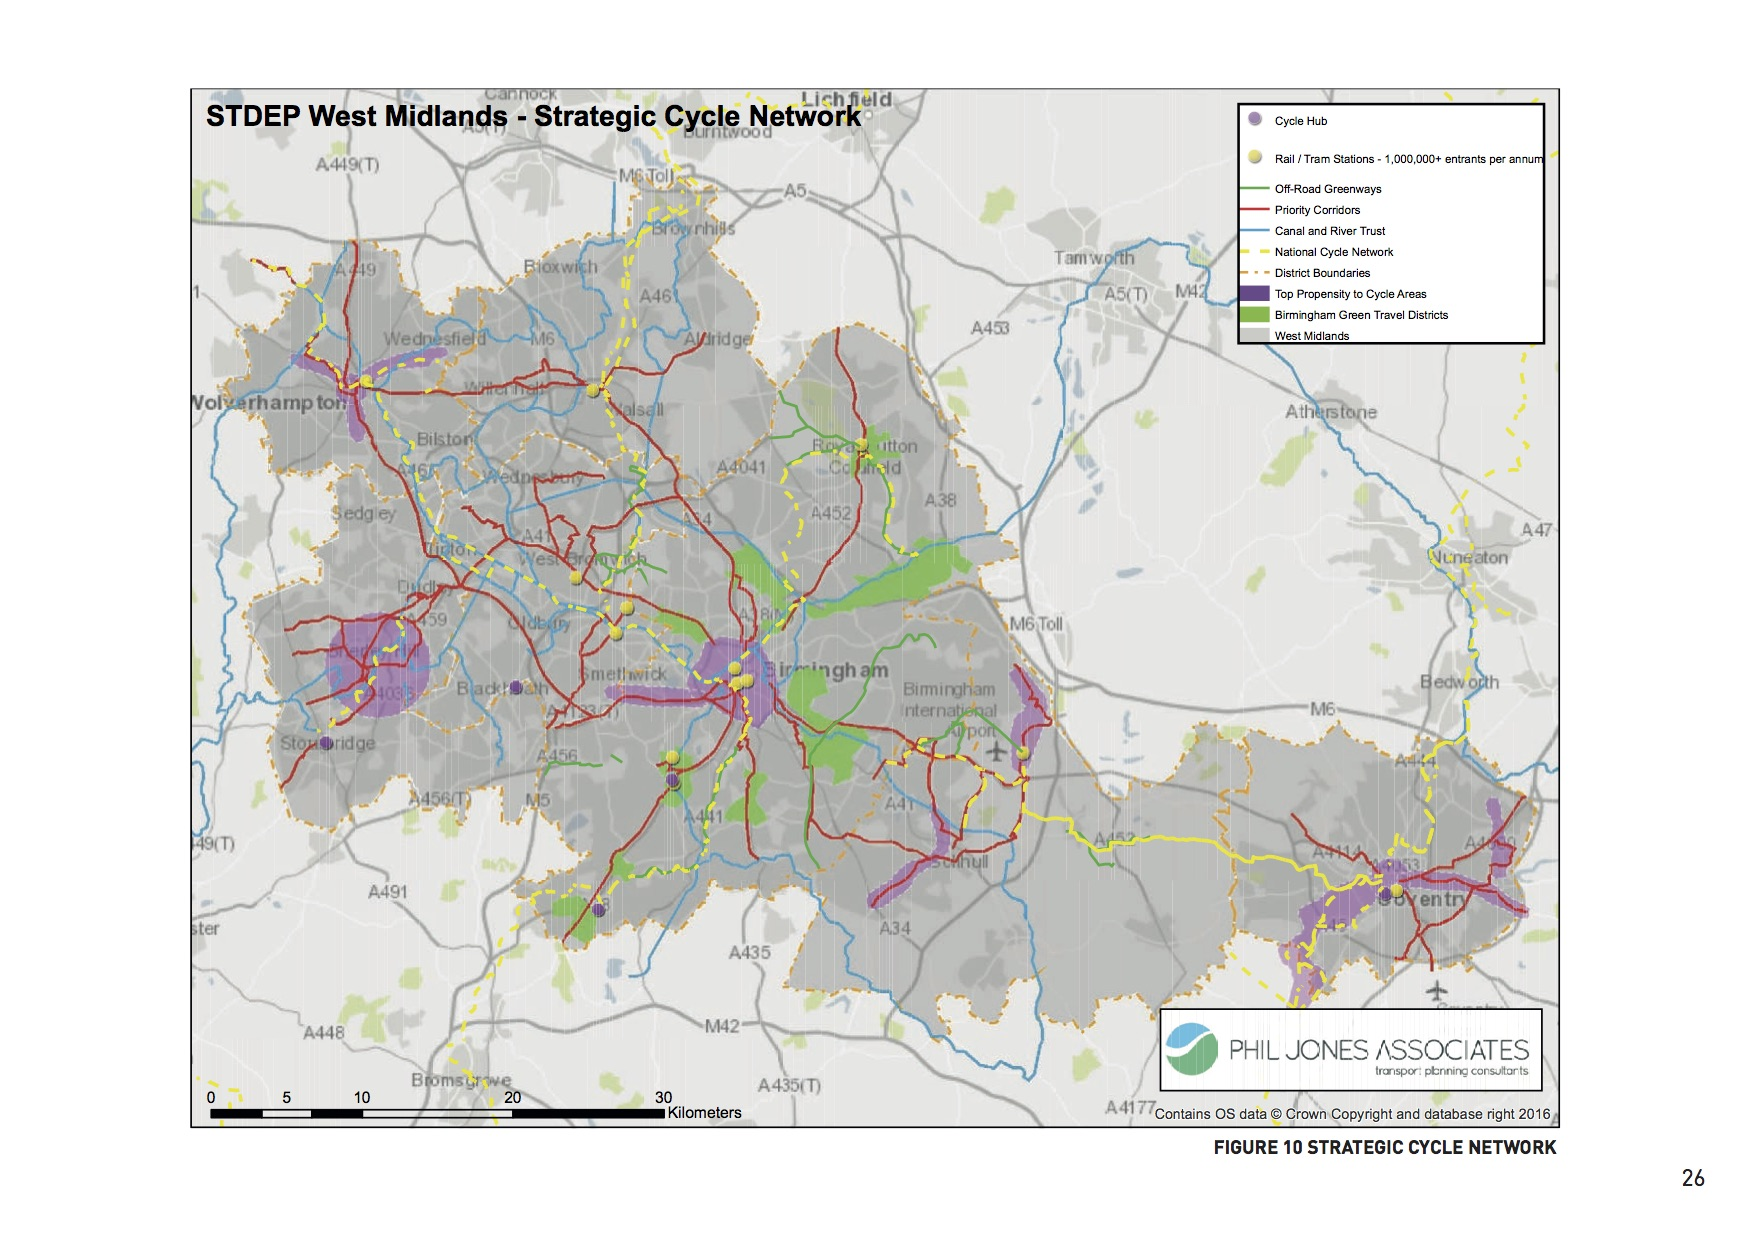 WMCA's strategic cycle network